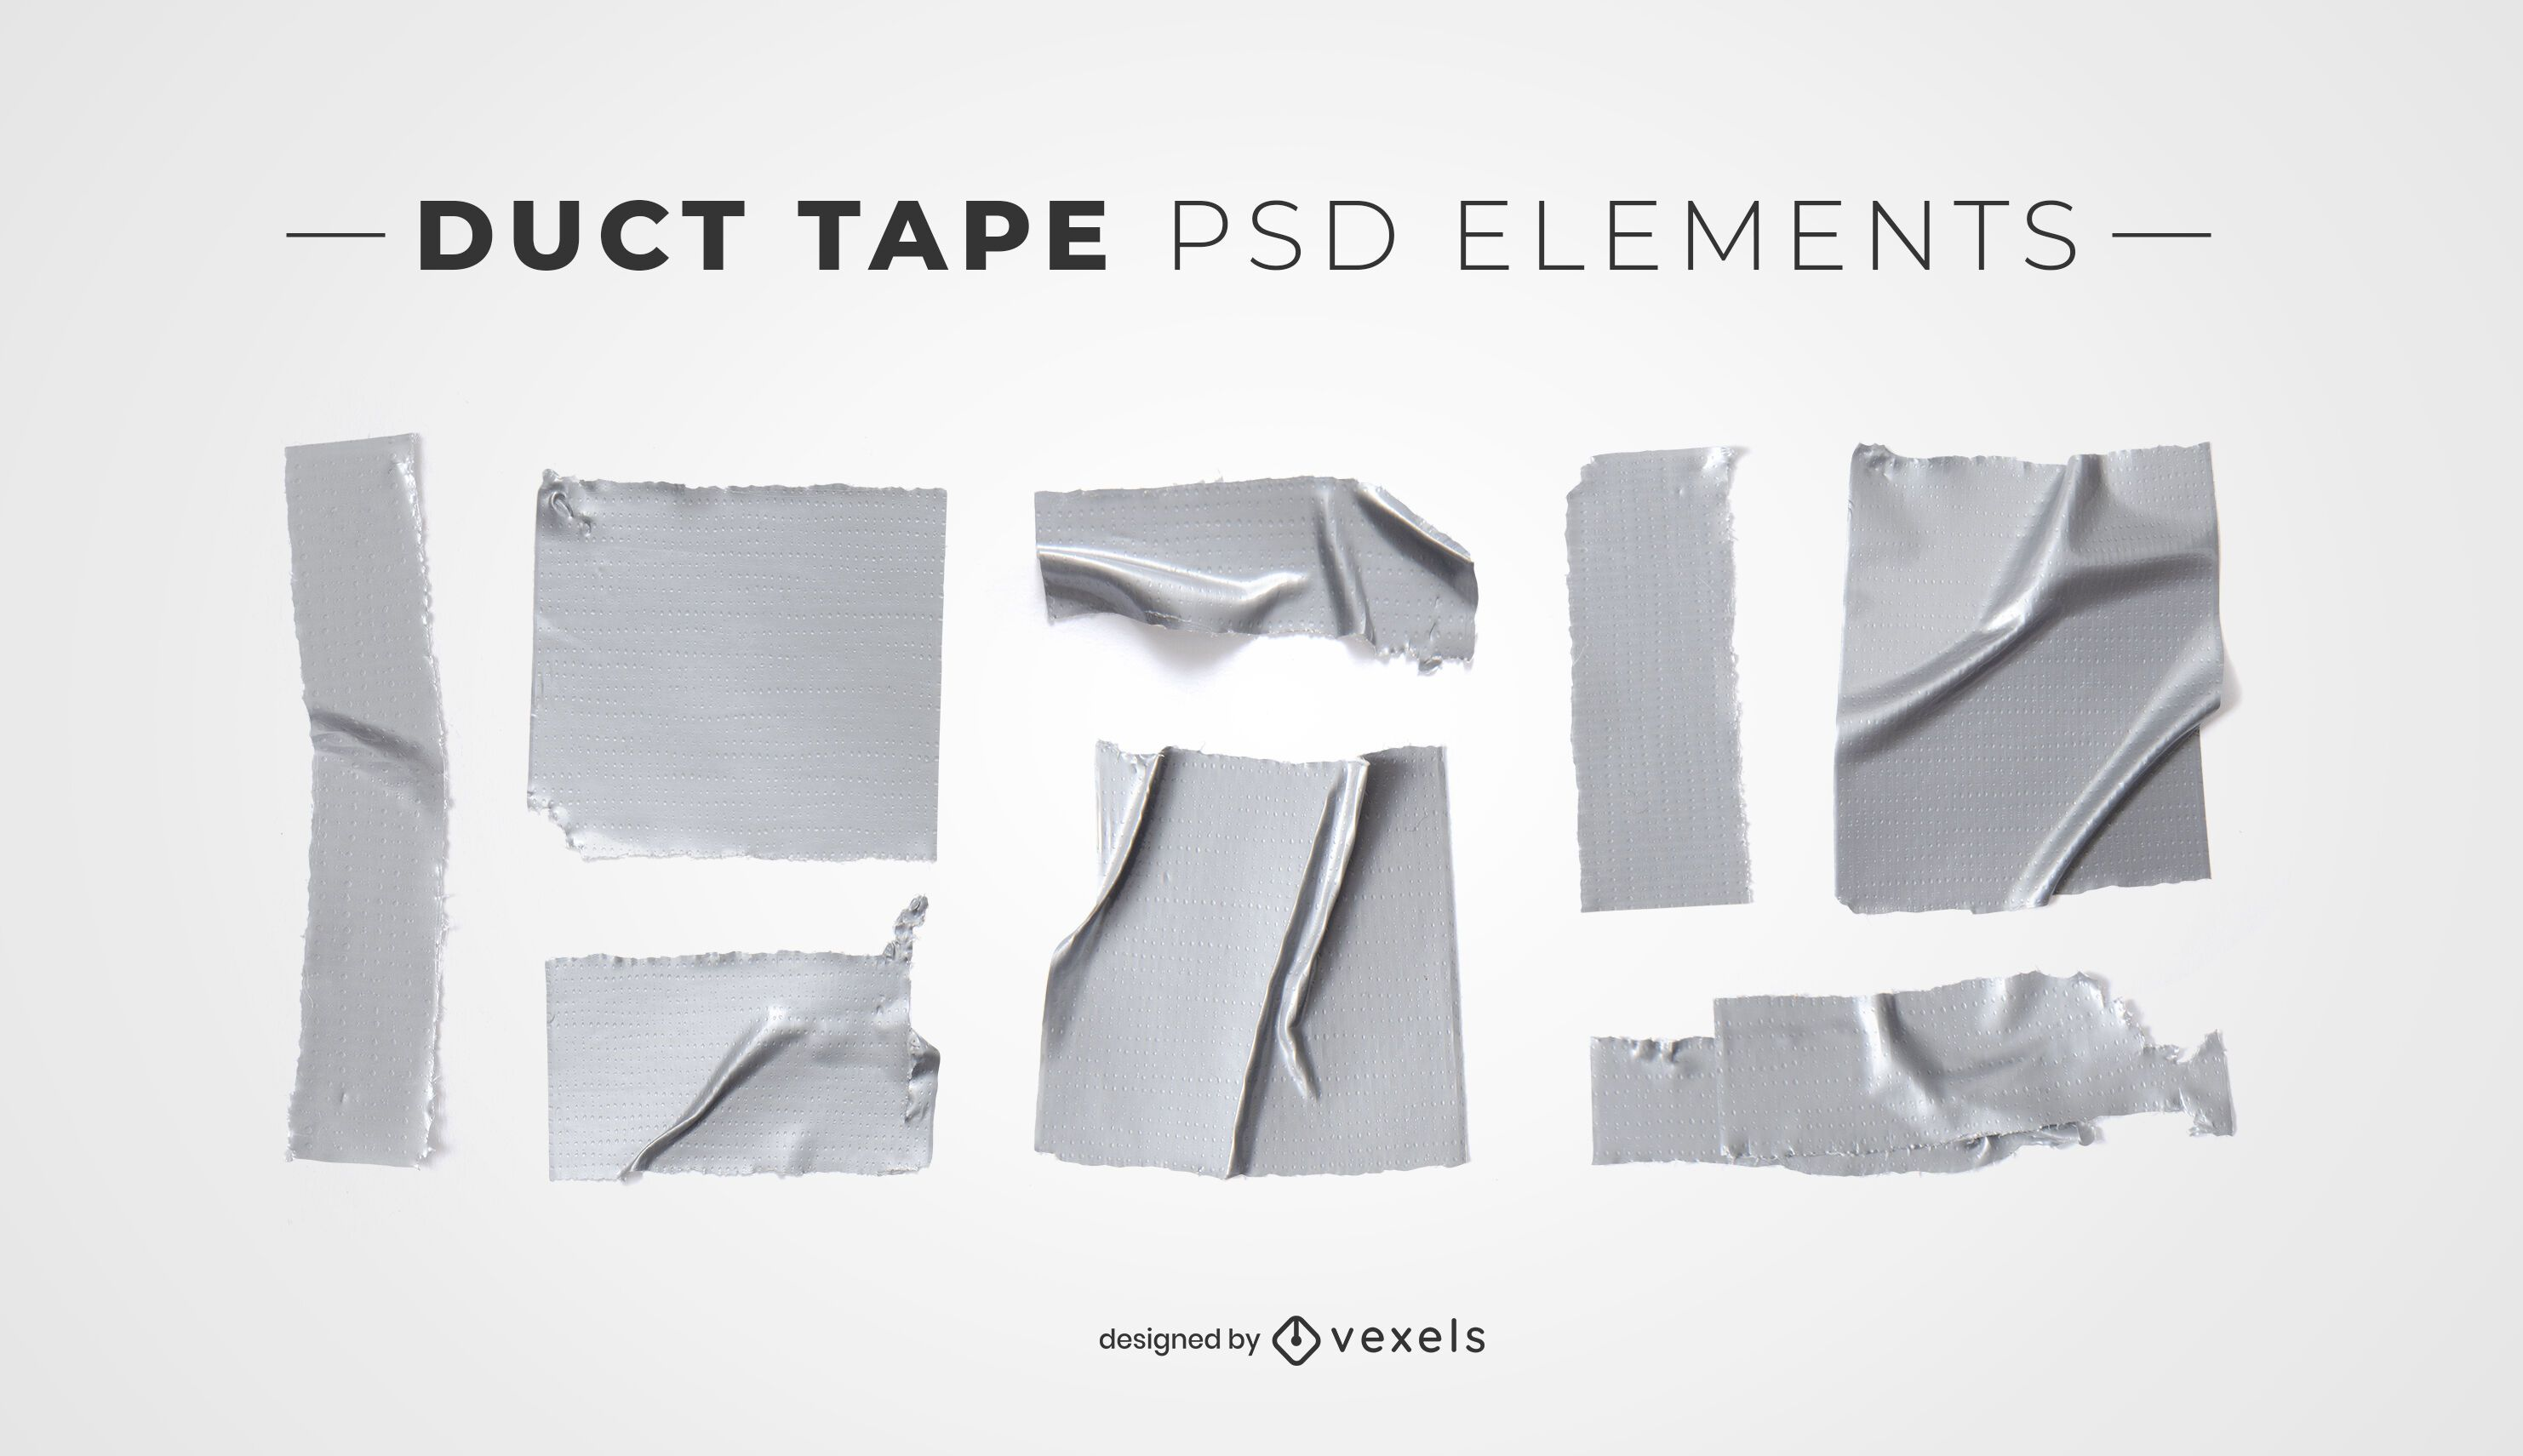 Duct tape psd elements for mockups